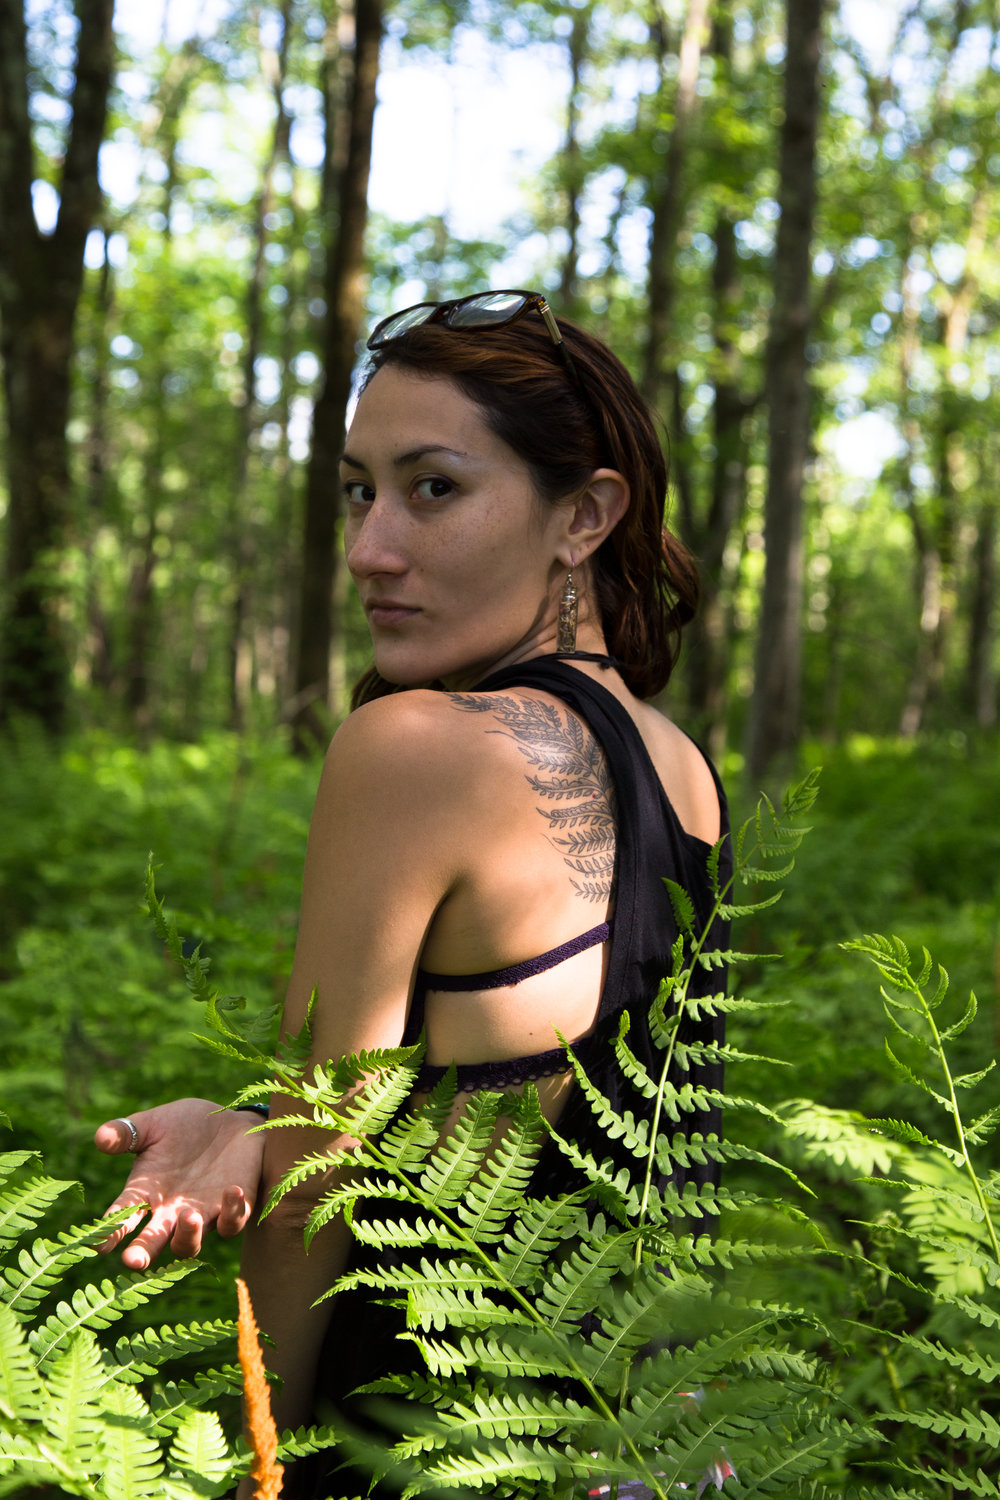 About Kristen - Kristen Volpone explores the energetic tapestry of the human body and offerings of the heart's gifts through Yoga, Reiki, Meditation, Sound, Kindfulness, Intentional Jewelry Making, and Poetry. Her intention is to support, encourage, and empower those in her communities with Yin Yoga & the Healing Arts.www.yinwithkris10.com